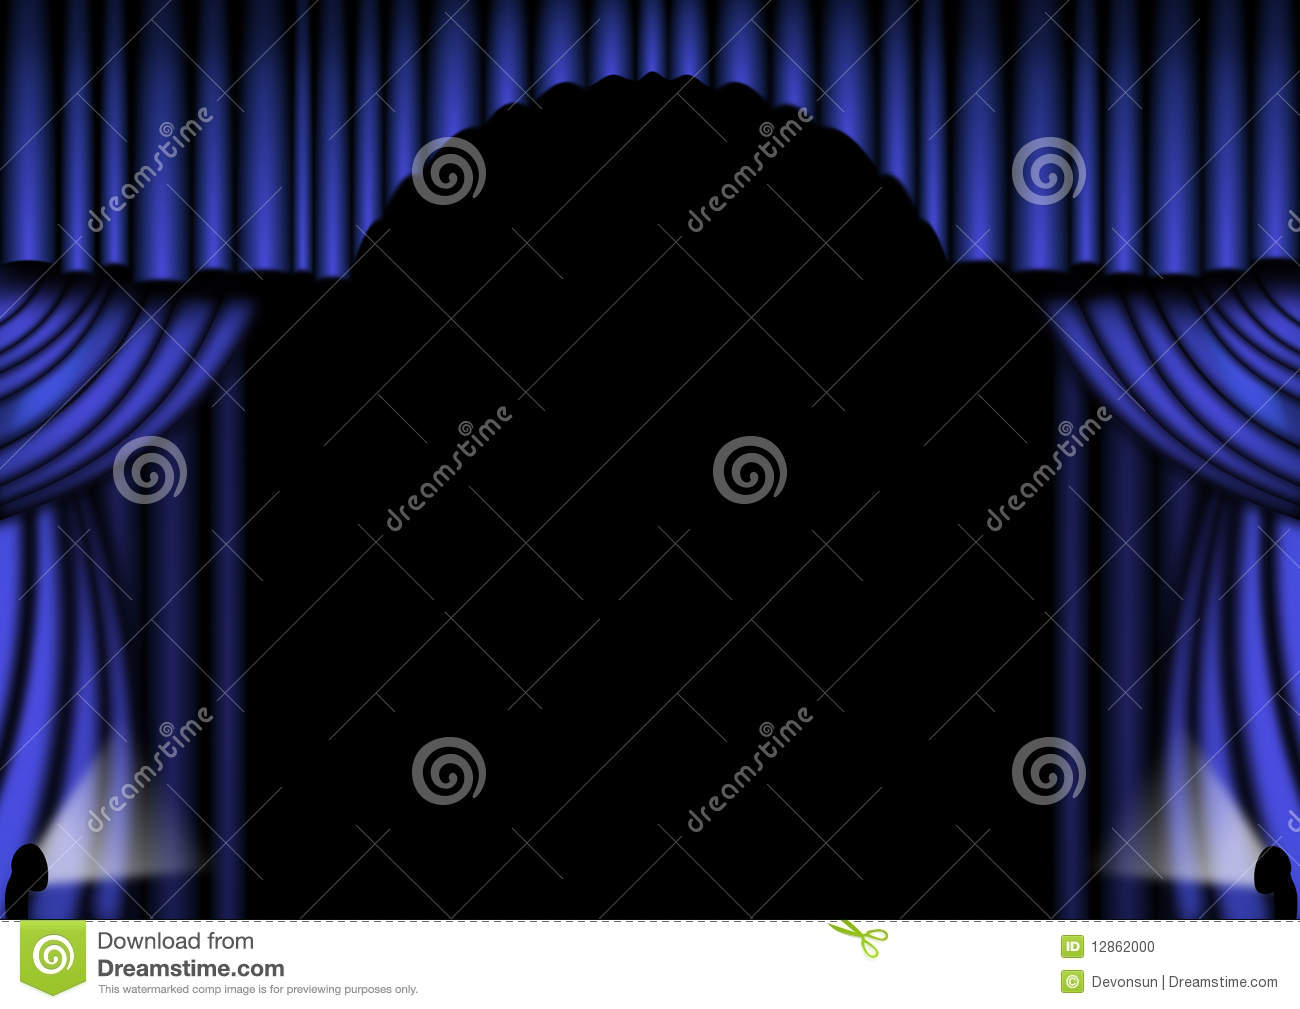 Theater curtains download free vector art stock graphics amp images - Theater Curtains Download Free Vector Art Stock Graphics Amp Images 46